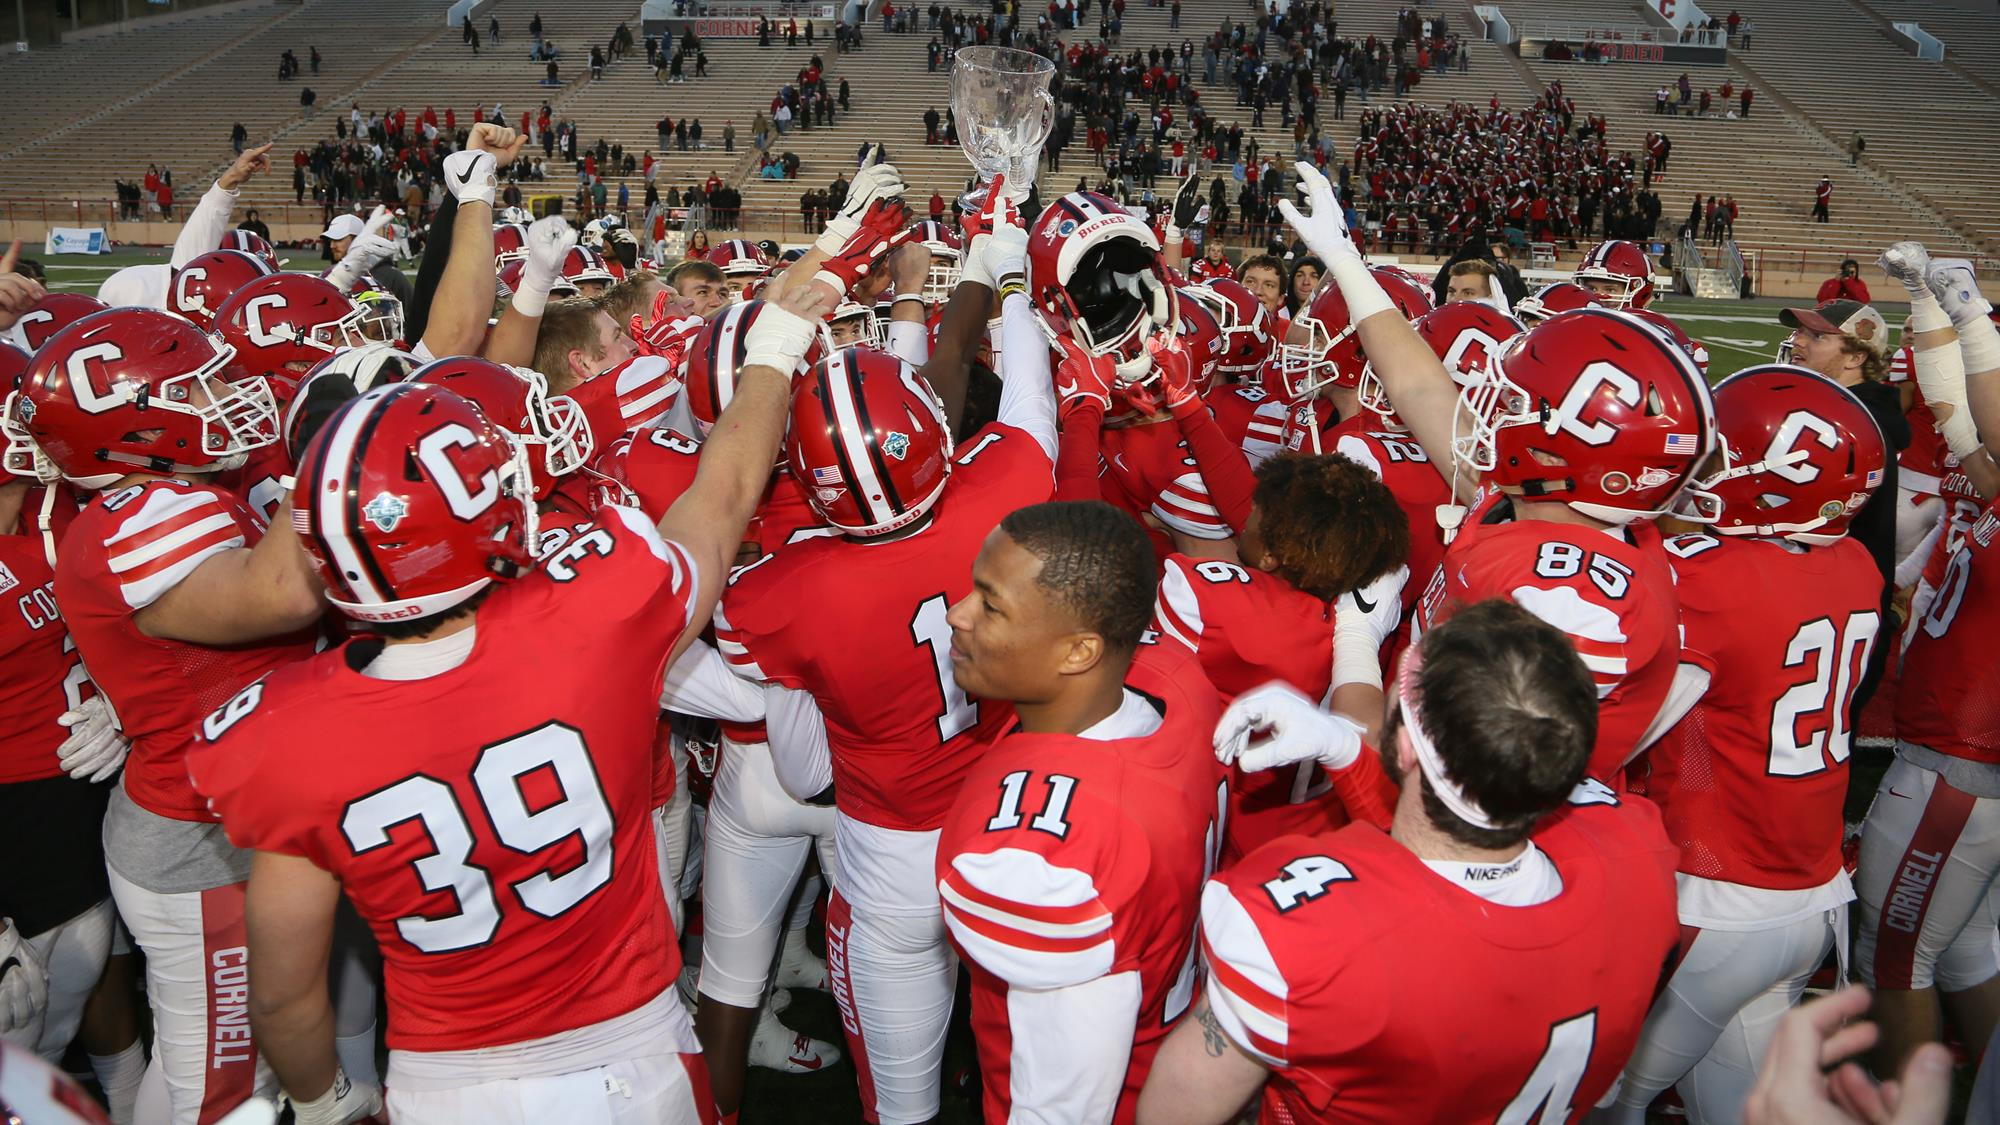 The Cornell football team celebrates with the Empire State Bowl after a 35-9 win over Columbia on Saturday, Nov. 23, 2019 at Schoellkopf Field in Ithaca, N.Y.